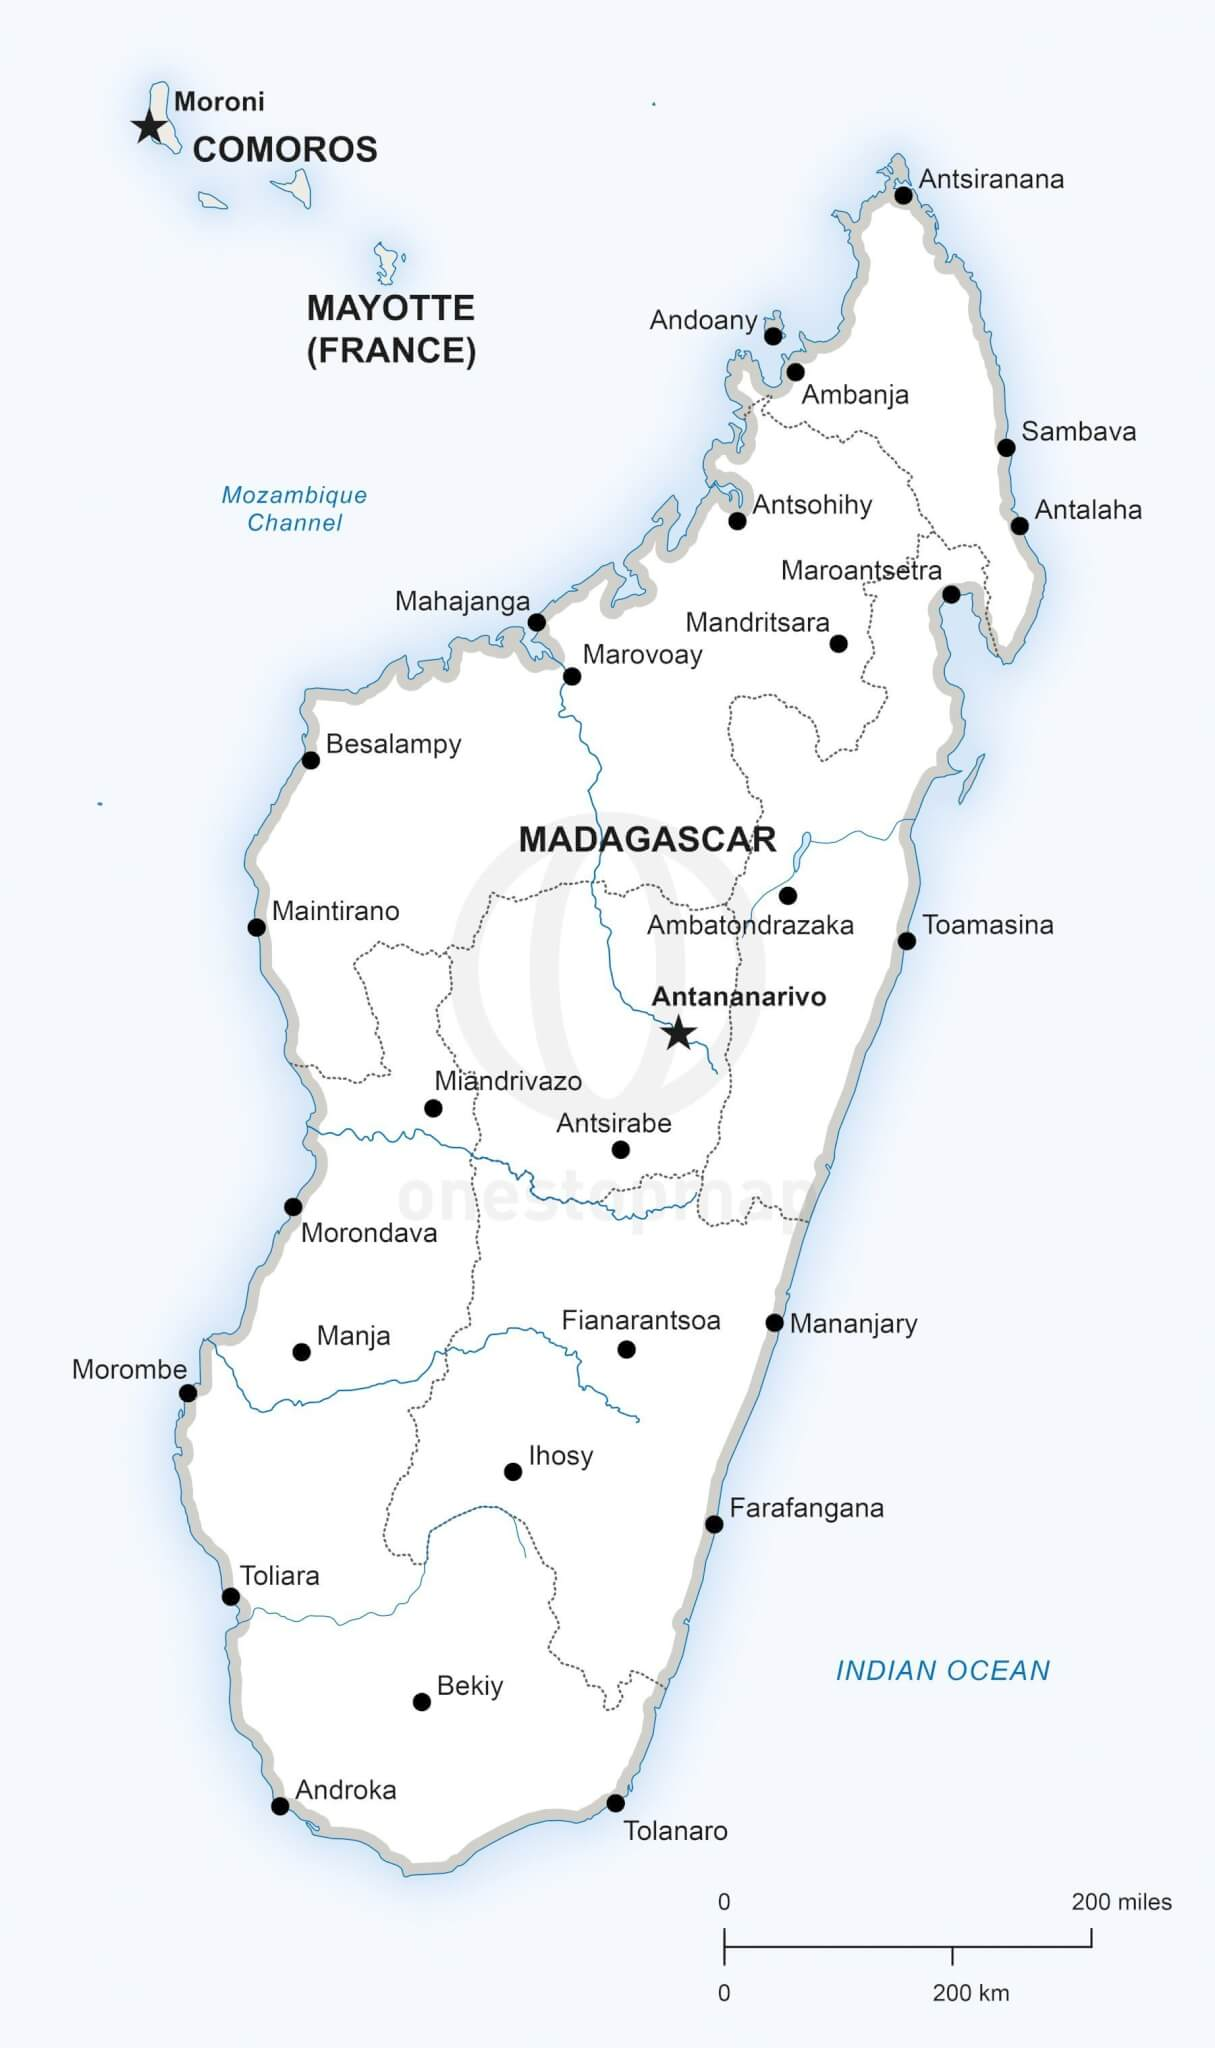 Free Vector Map Of Madagascar Outline One Stop Map - Madagascar map outline